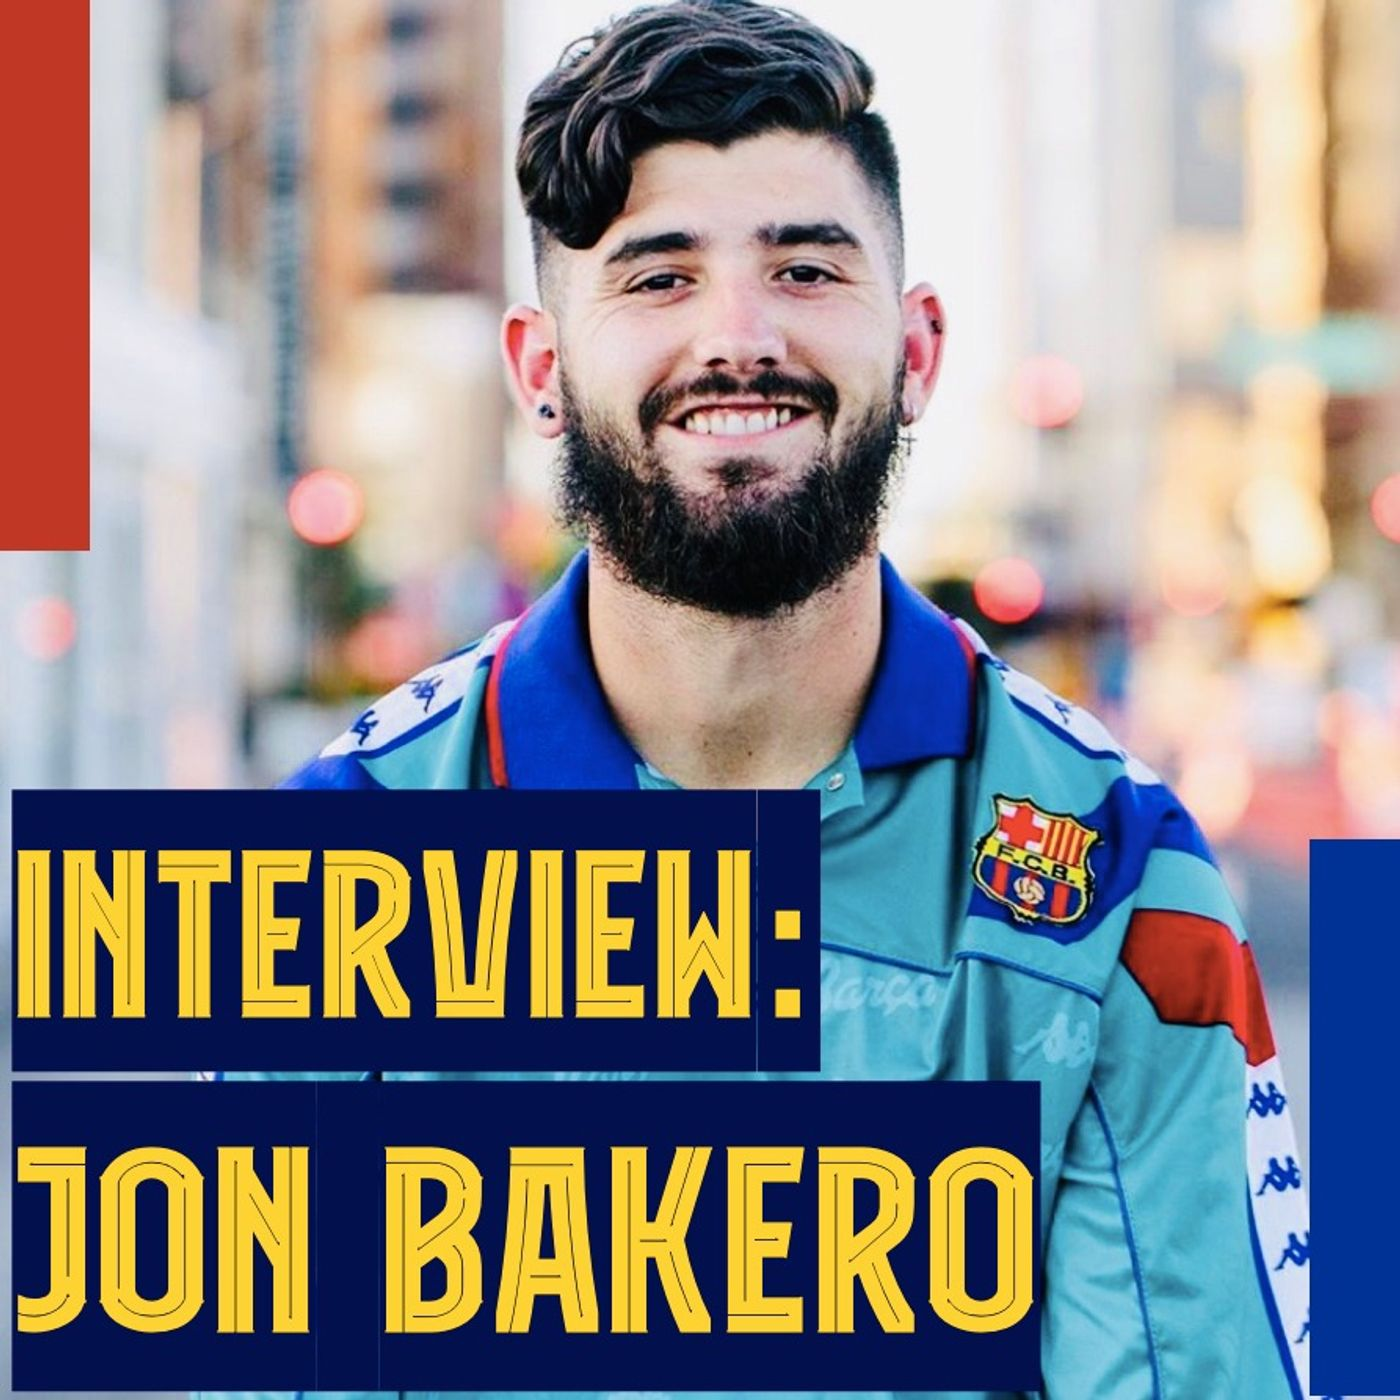 Jon Bakero Interview, Setién following in Valverde's footsteps, and Piqué comments